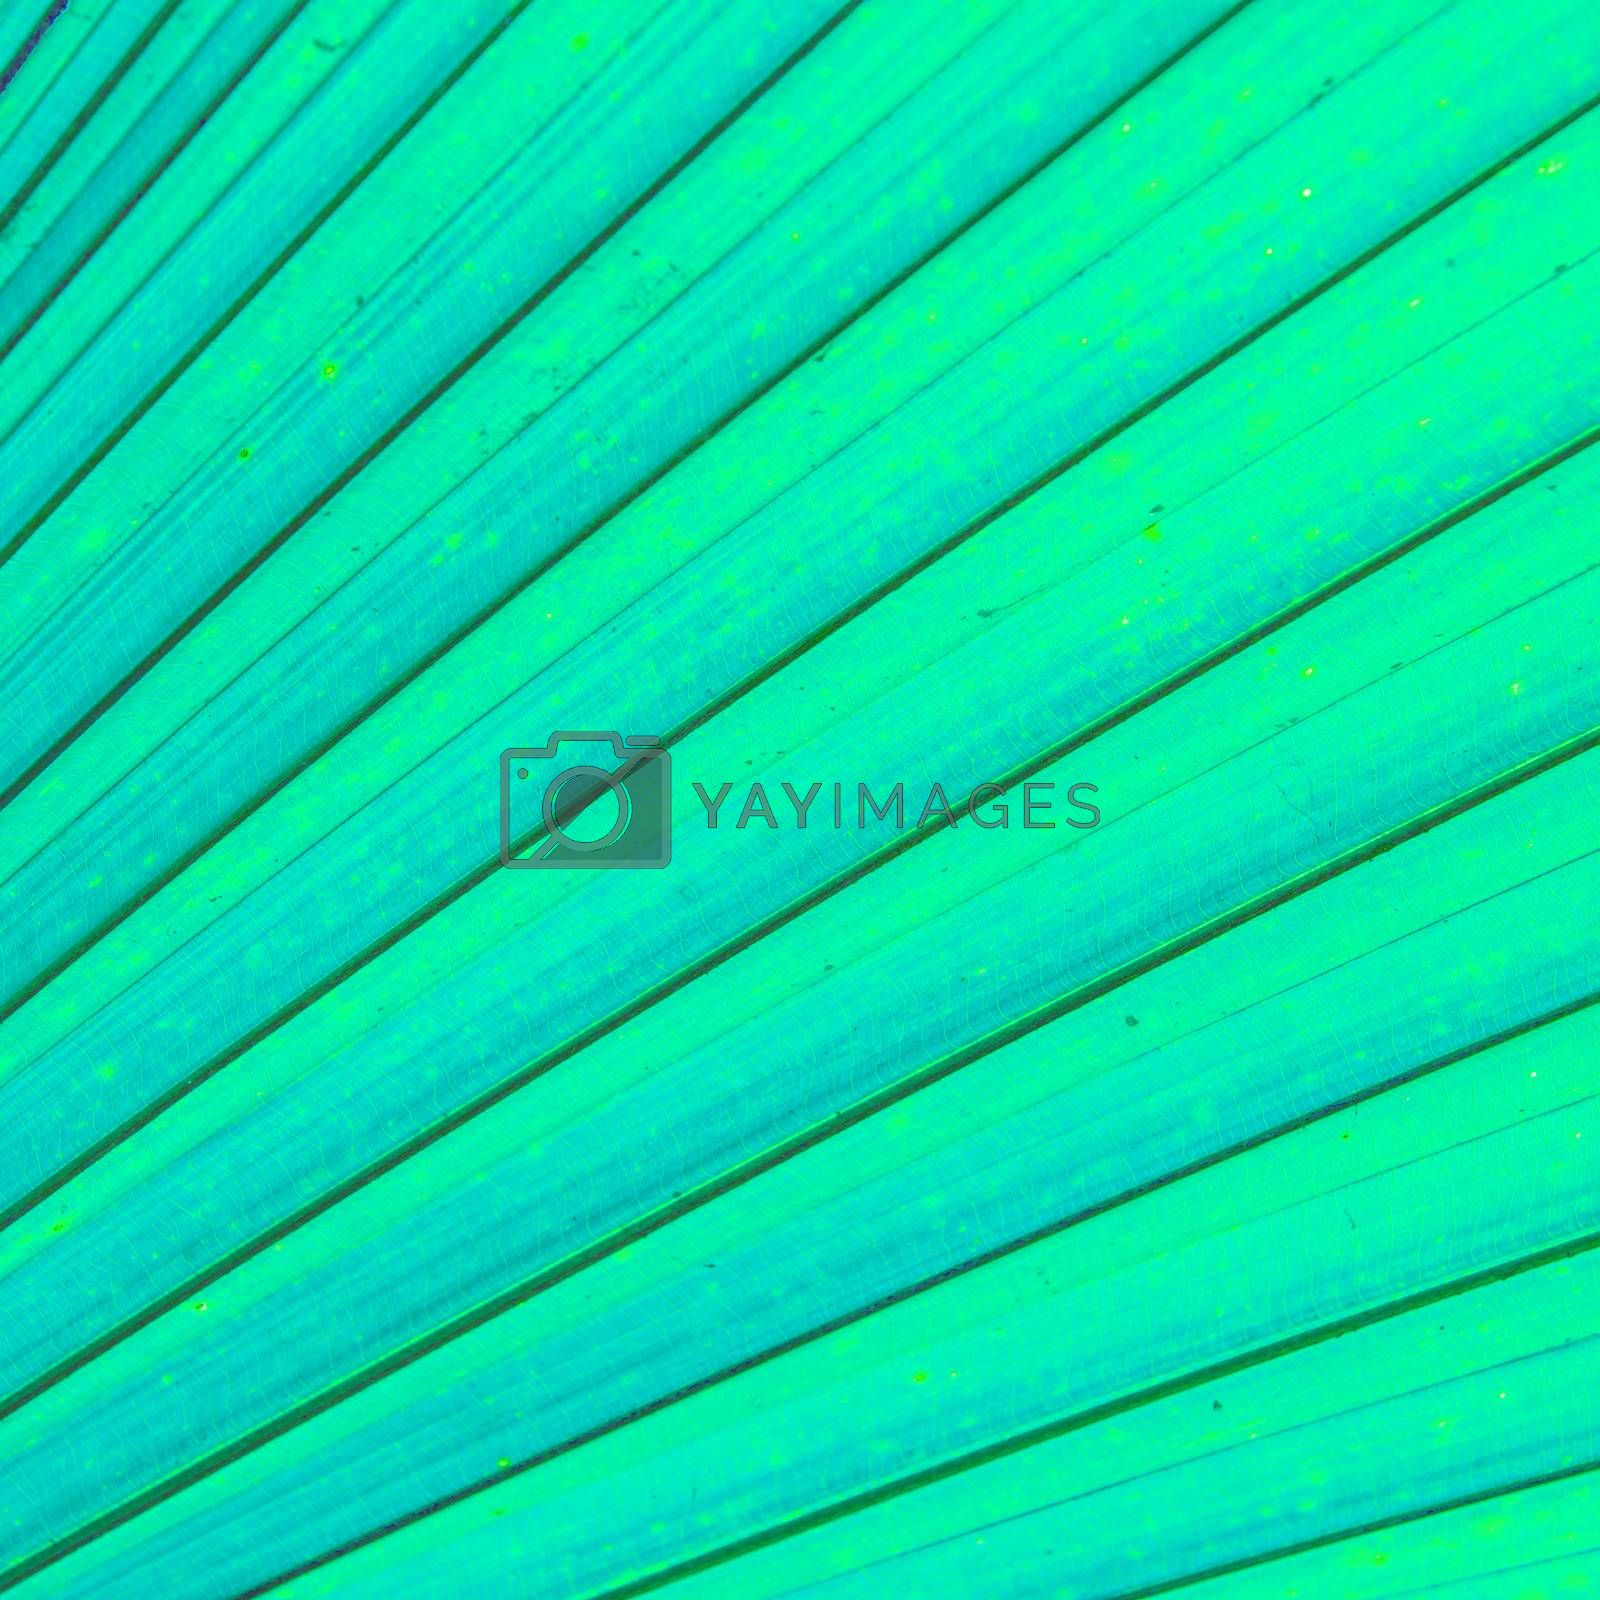 Royalty free image of Green leaves by tuchkay